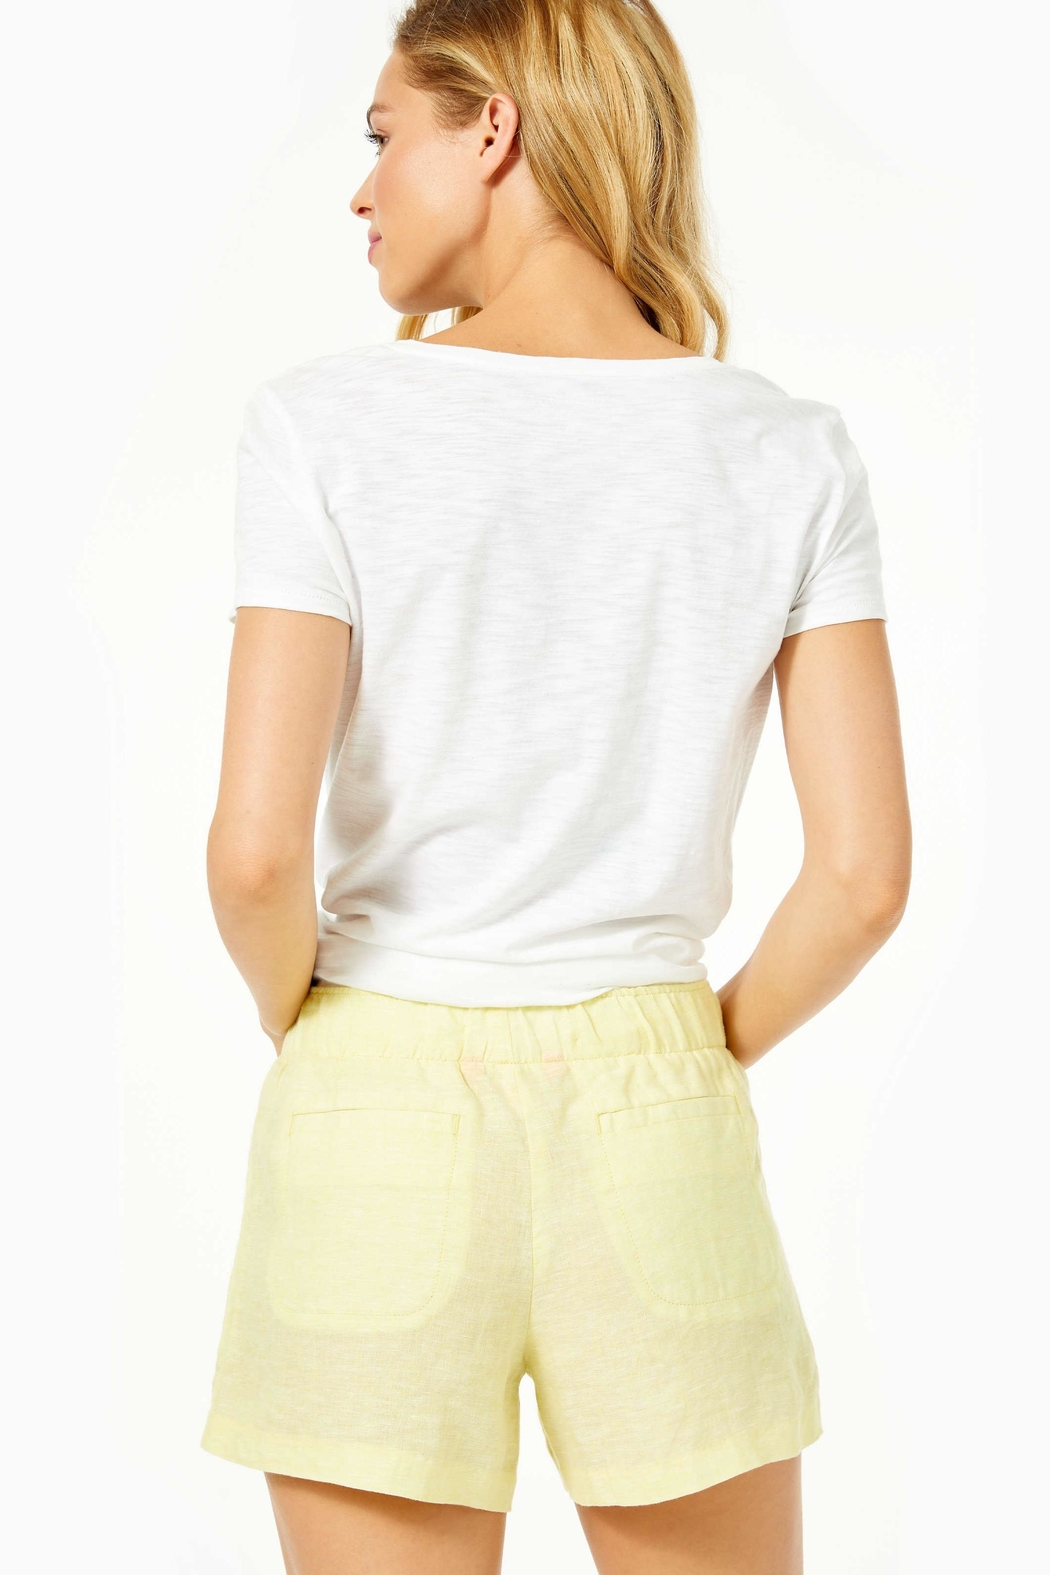 Lilly Pulitzer Lilo Linen Short - Front Full Image